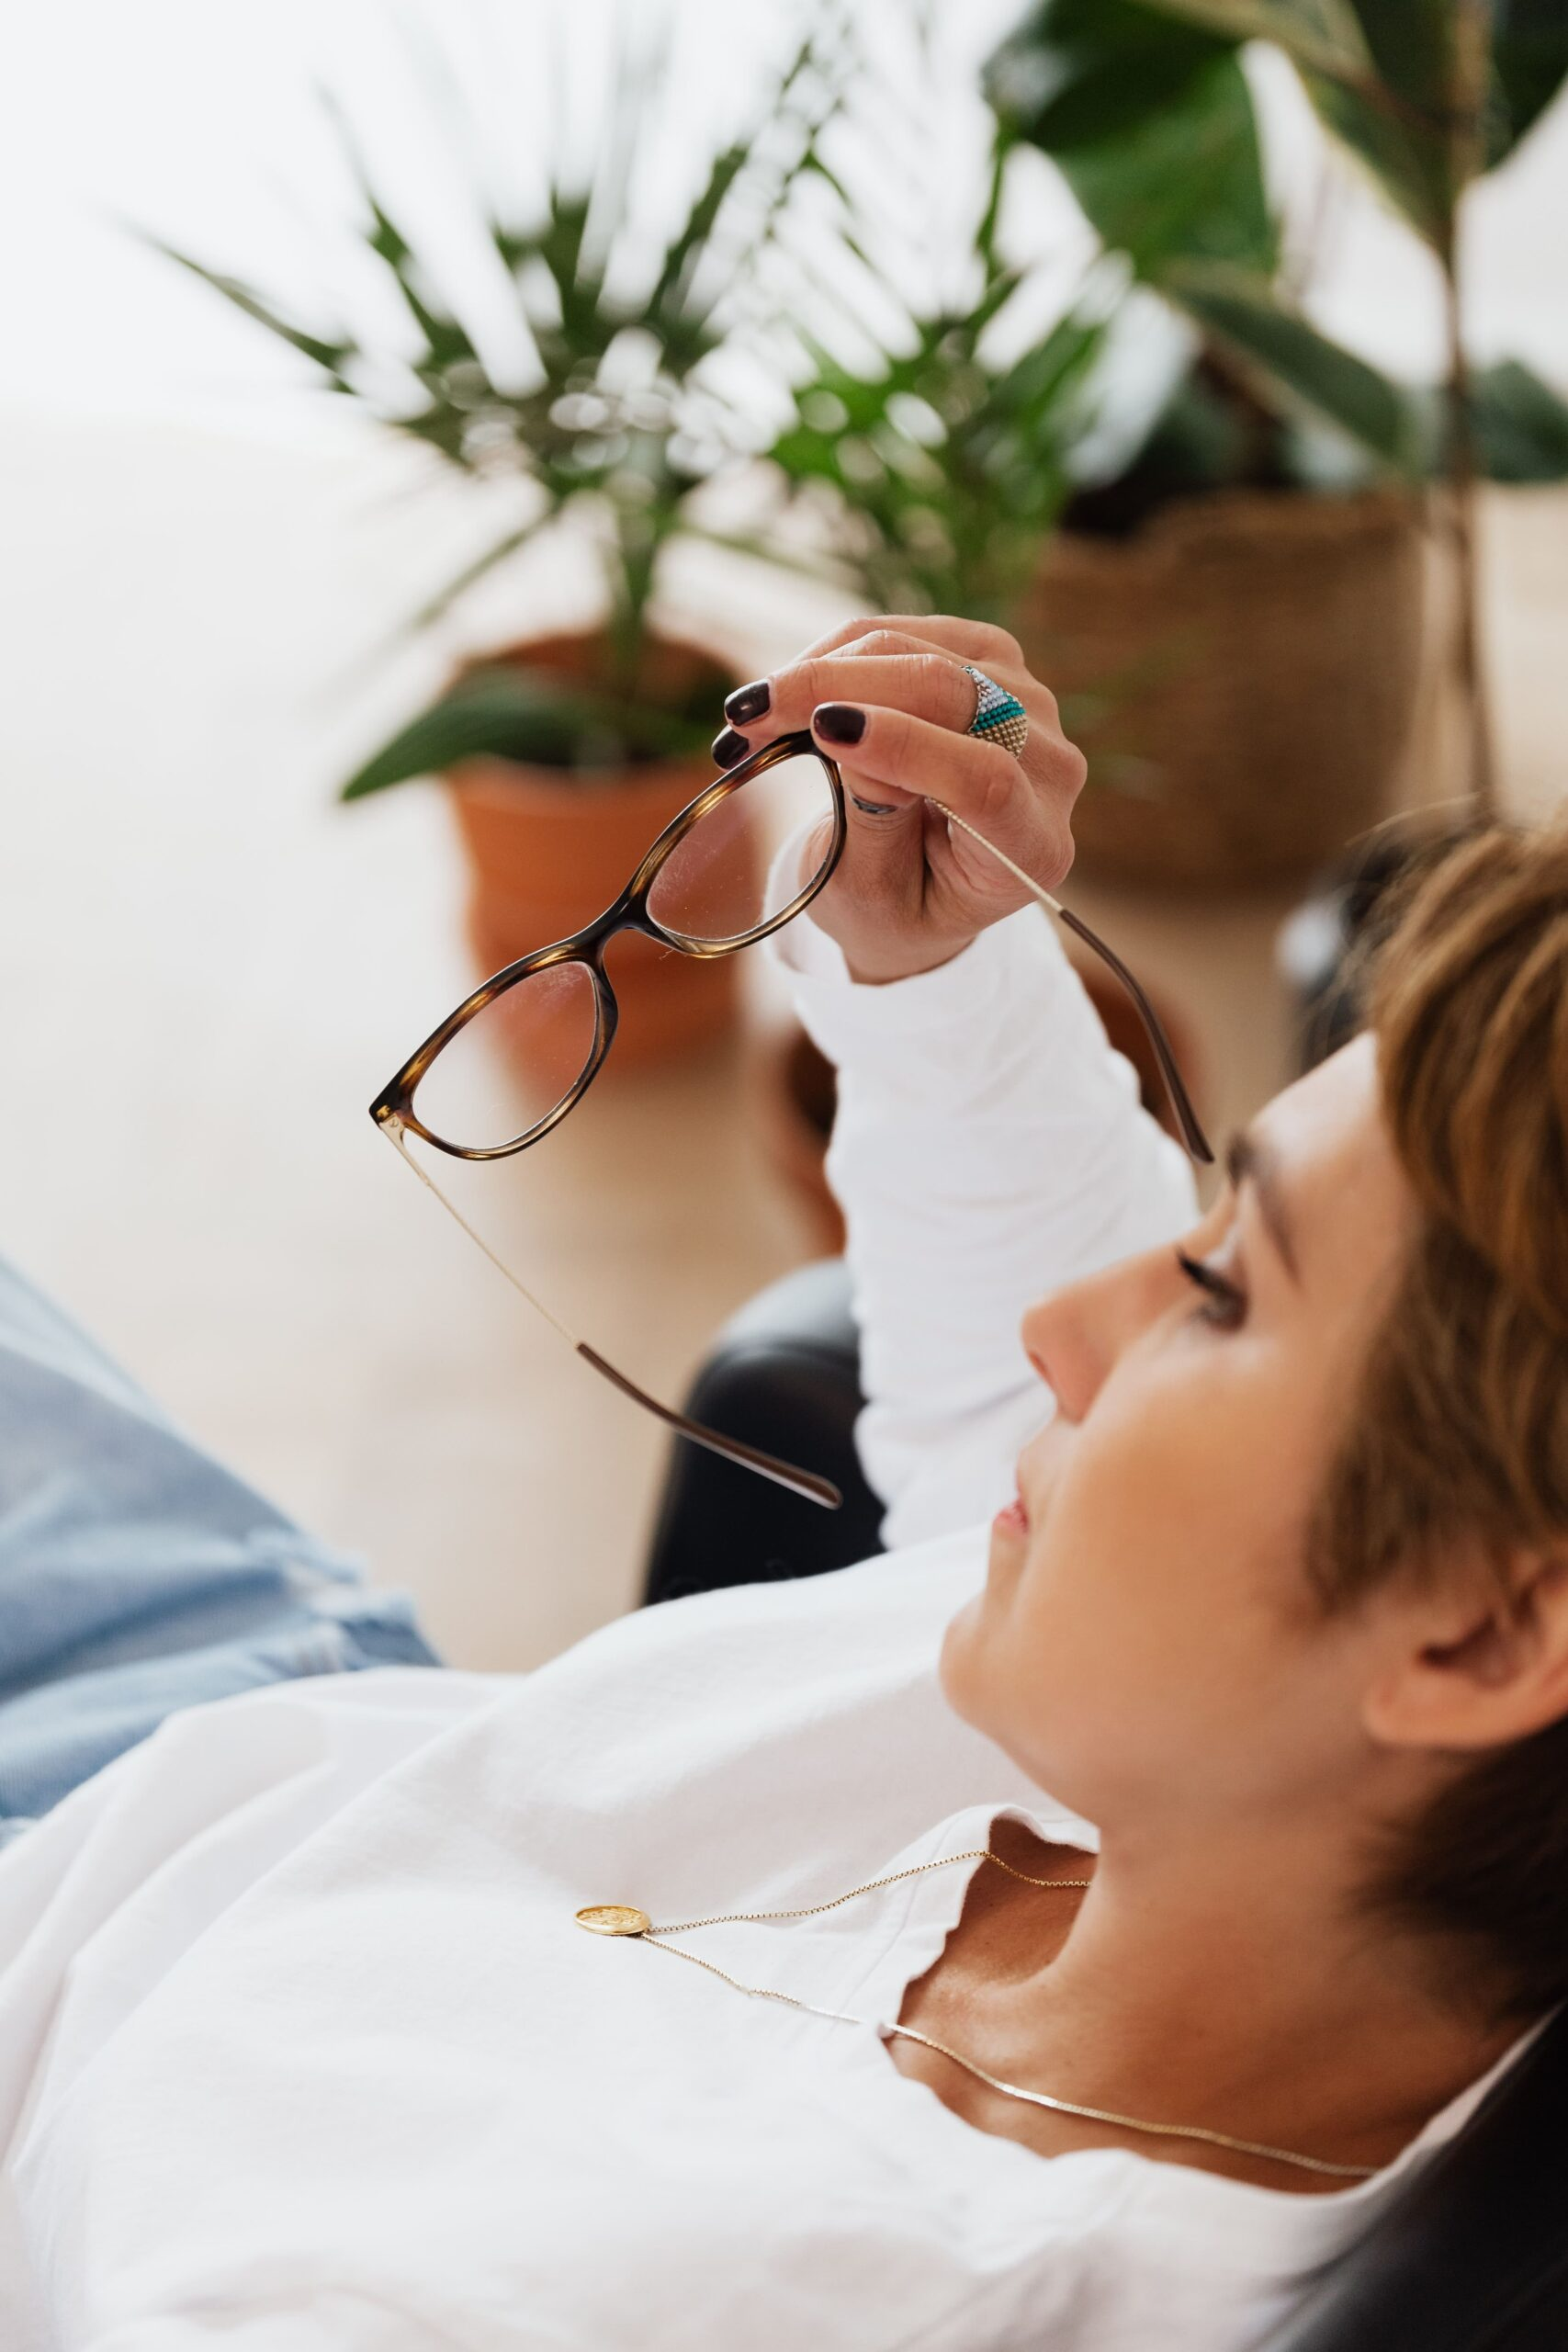 Worried woman reclining with glasses